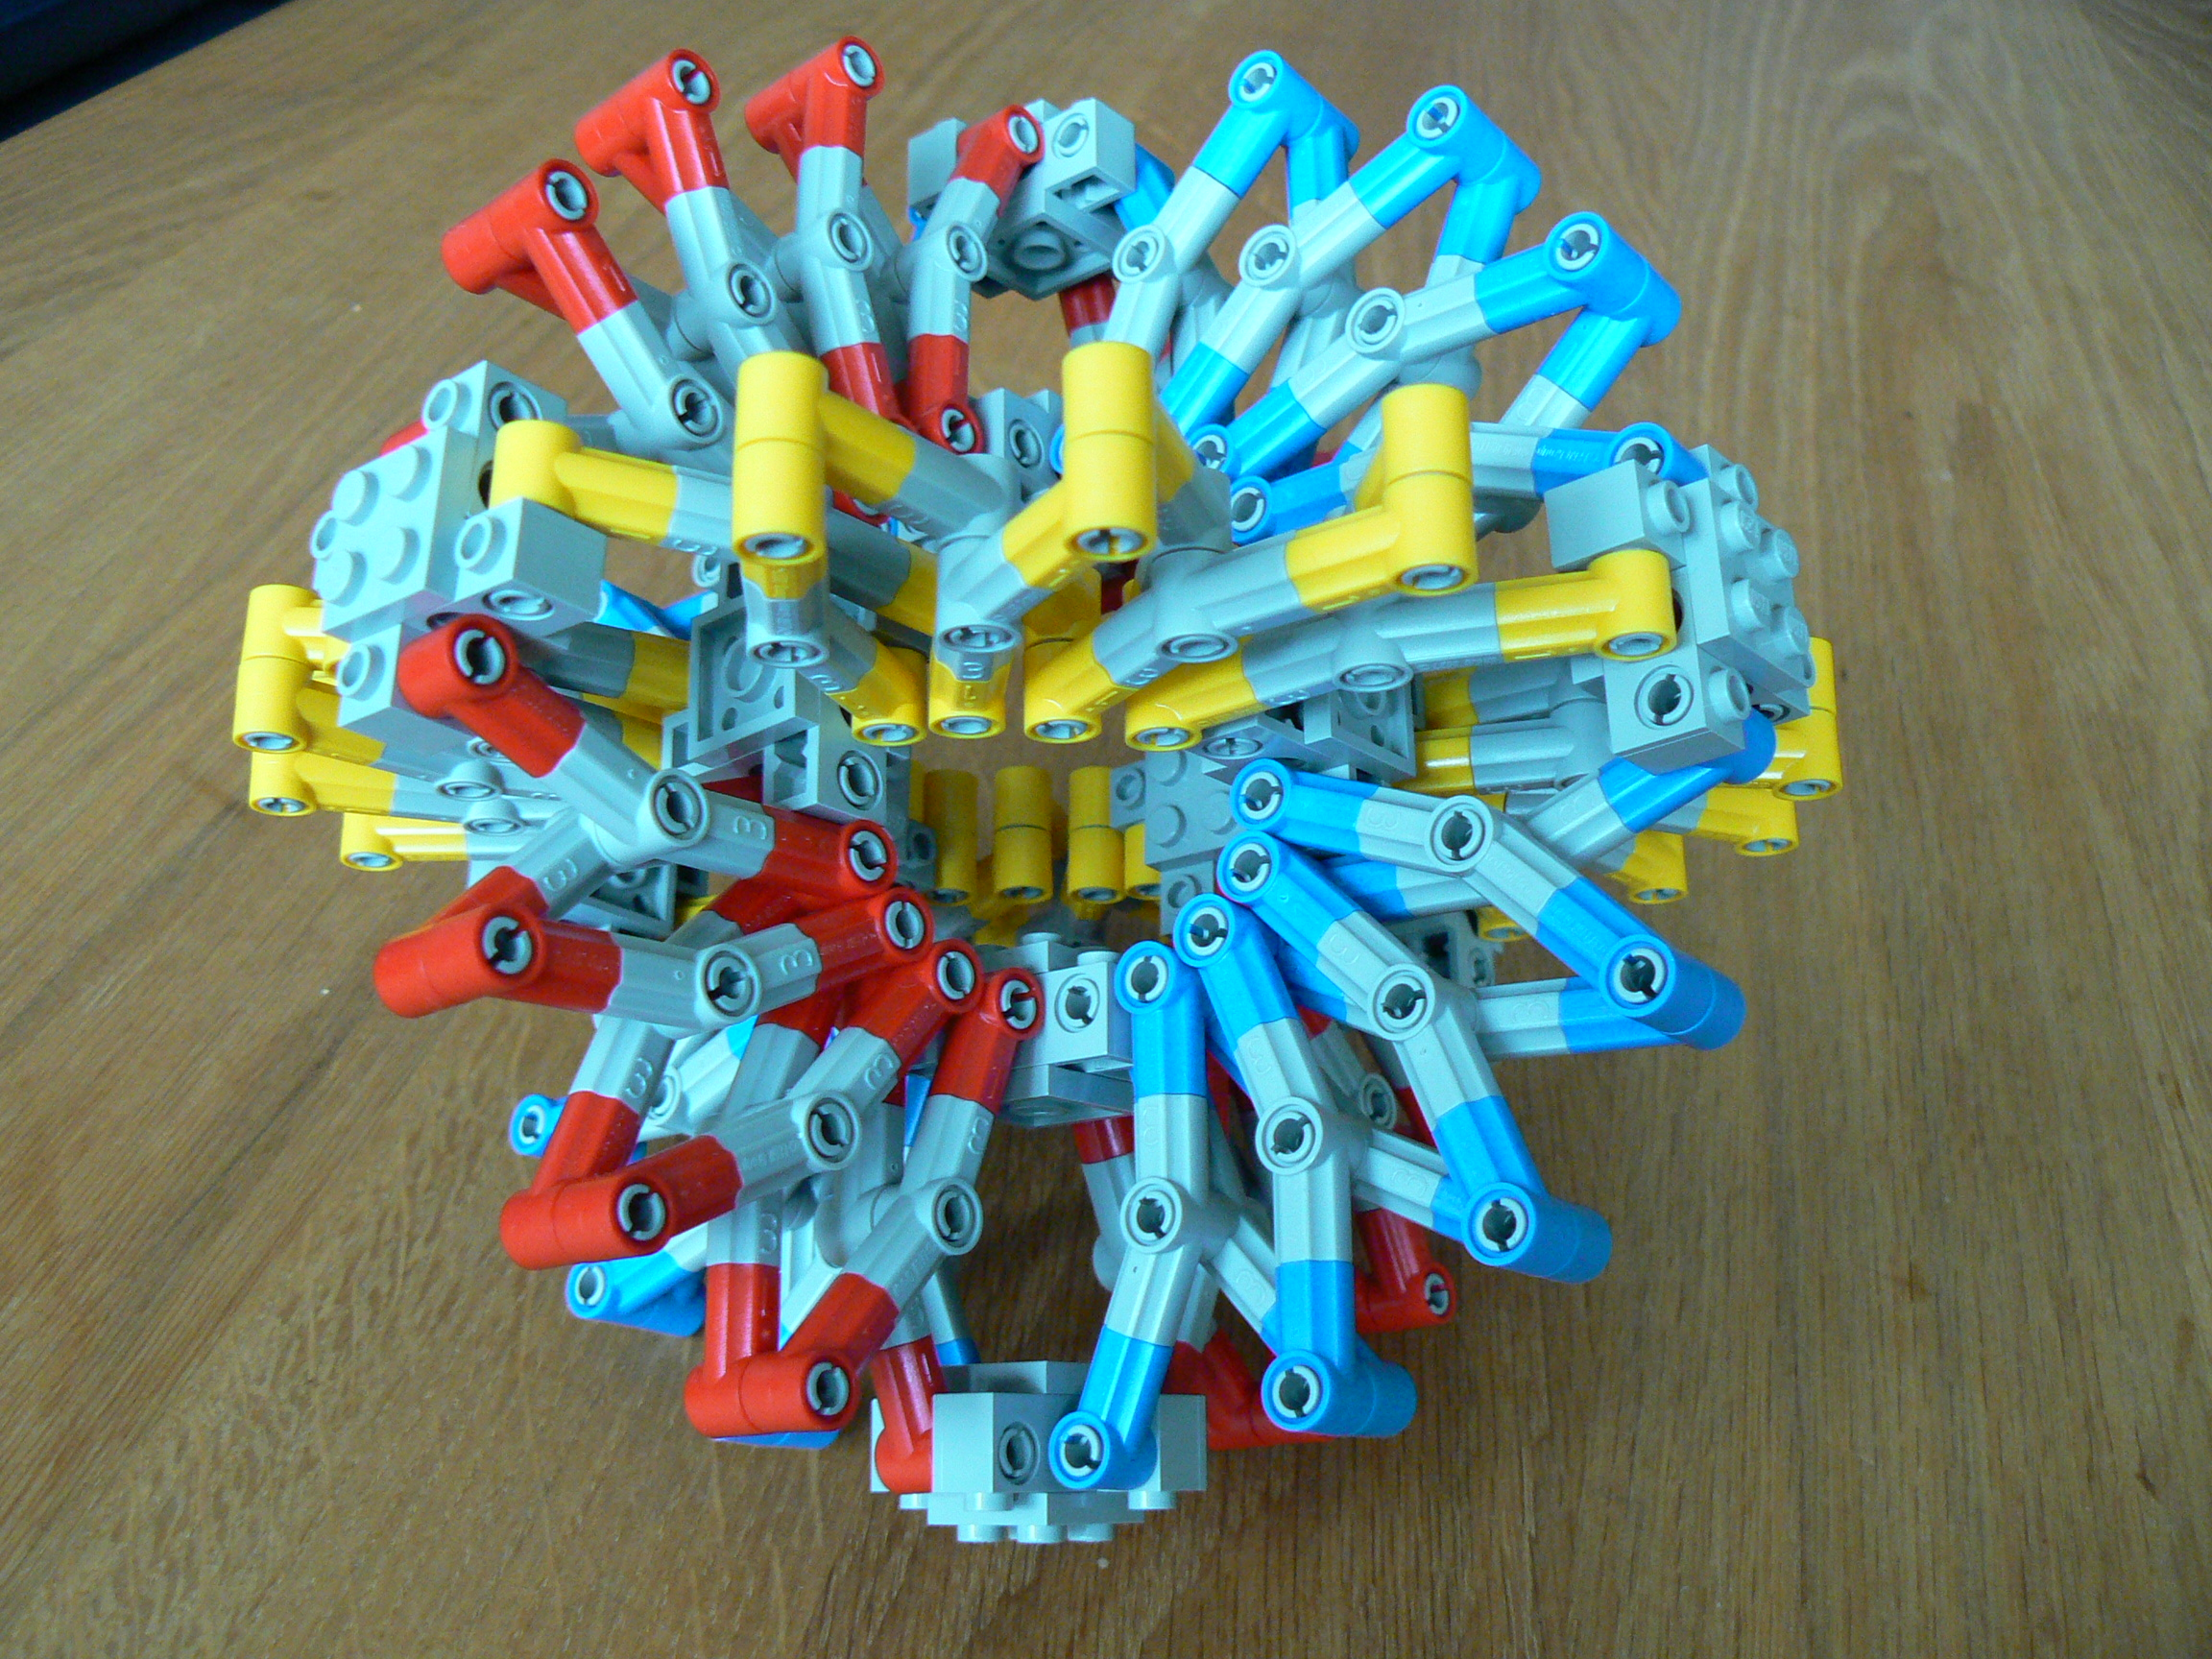 hoberman_sphere02.jpg